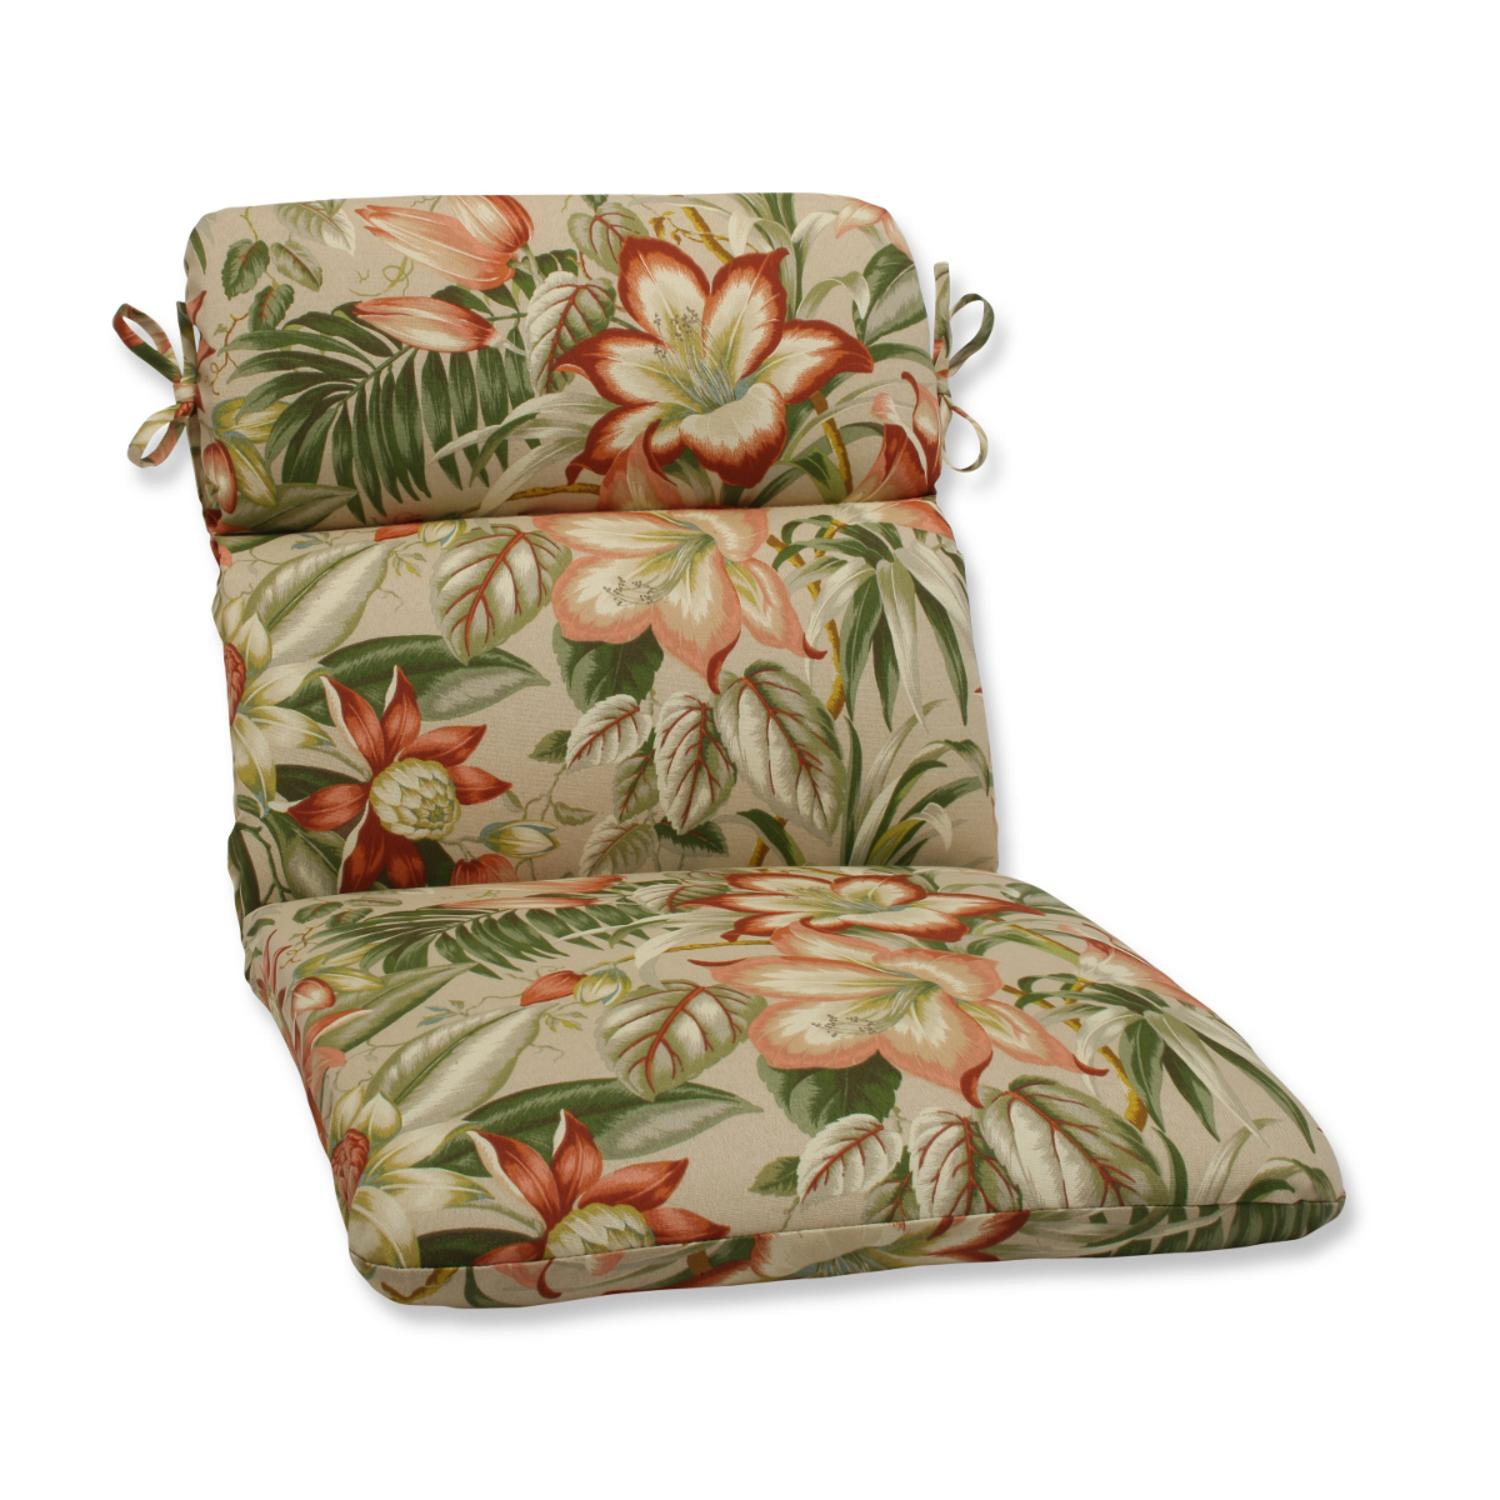 """40.5"""" Green, Tan and Coral Tropical Garden Decorative Outdoor Patio Rounded Chair Cushion"""